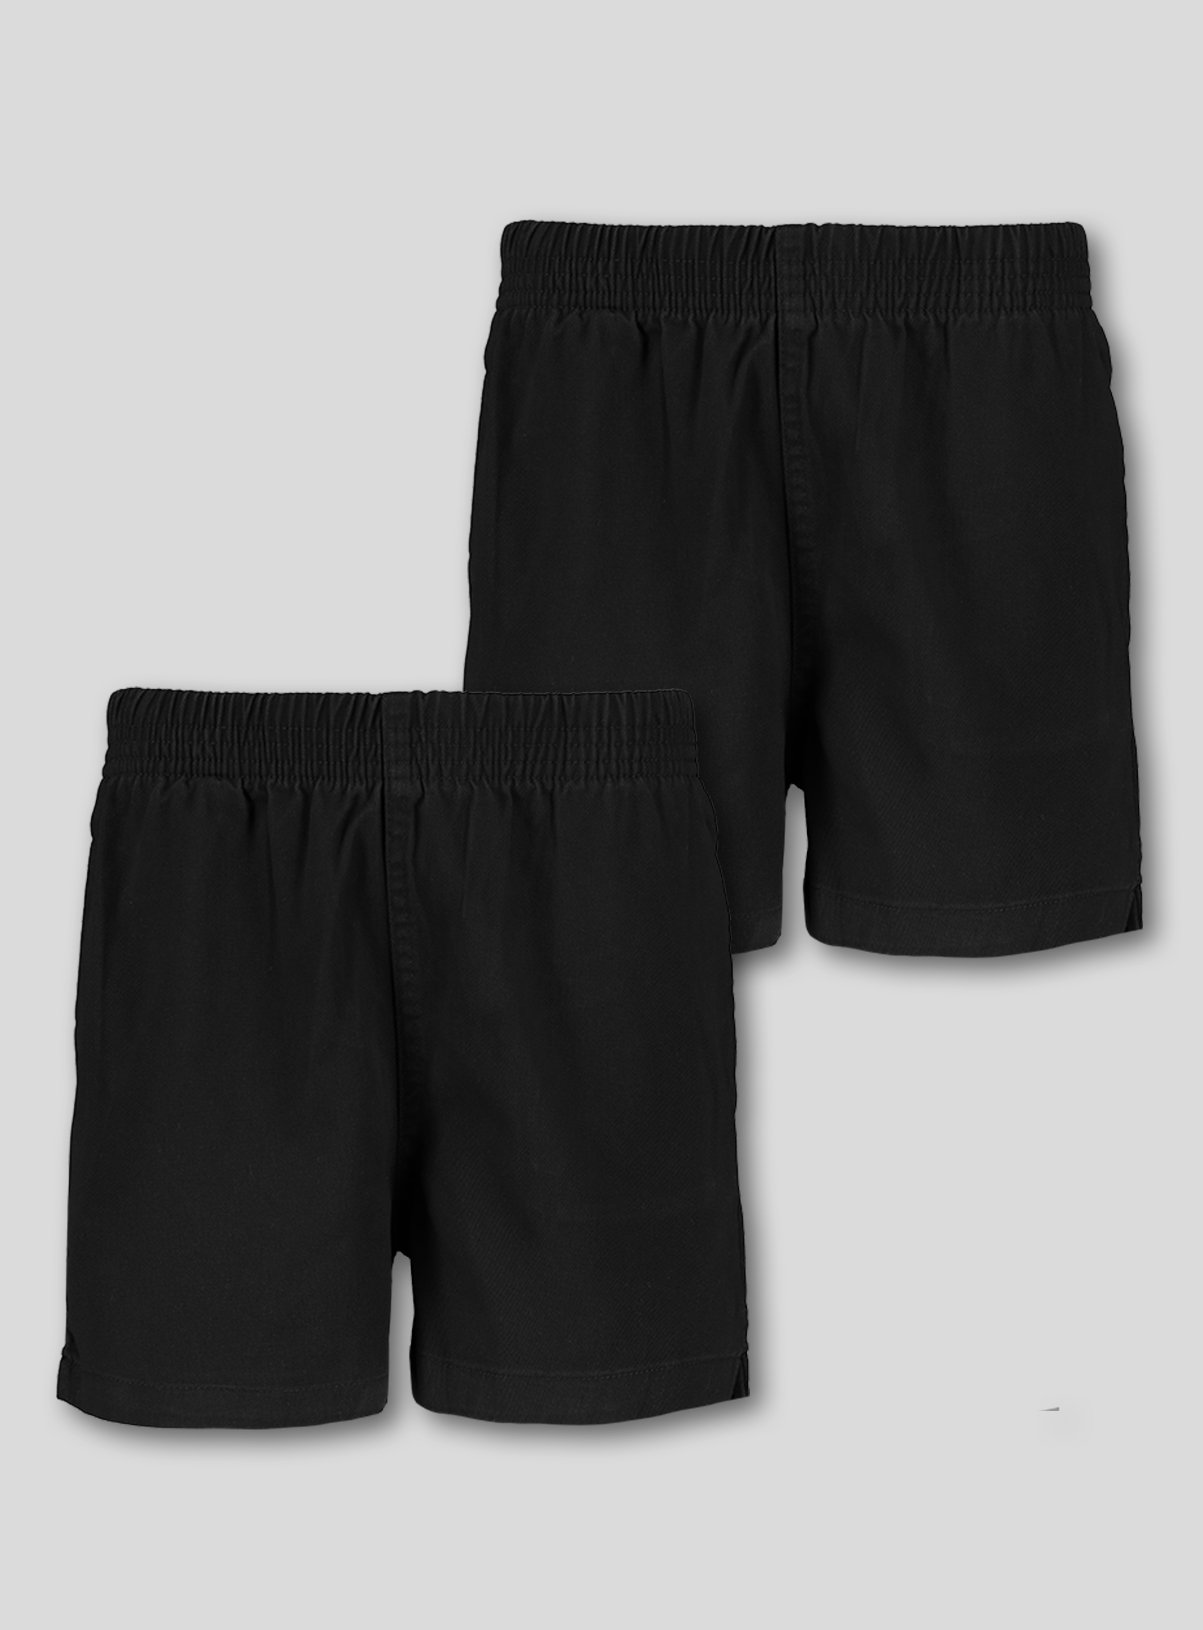 Shorts and Pants Boys 3-Pack Sports Wear with Athletic Shirt